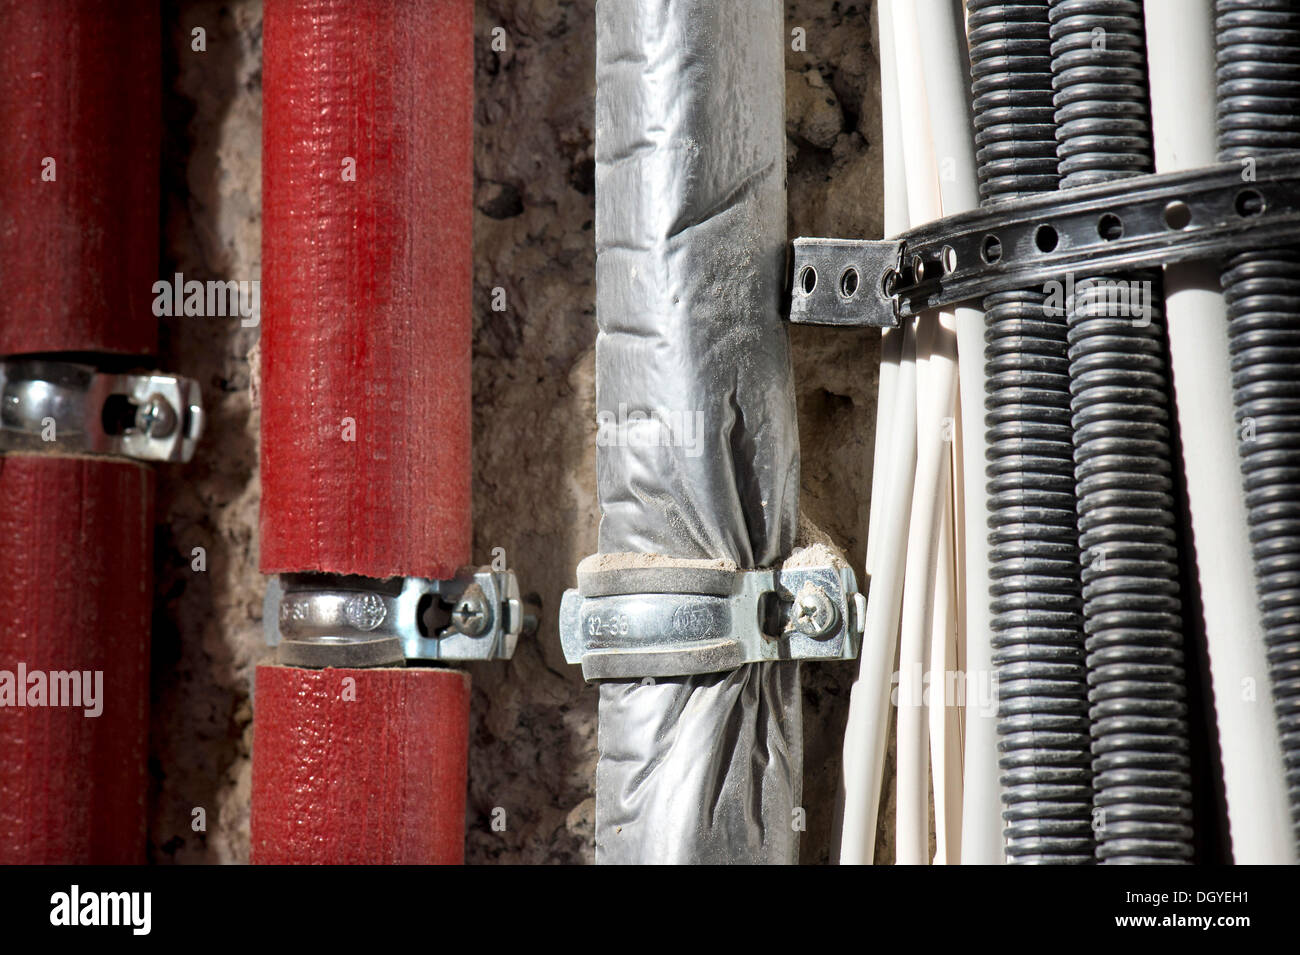 insulated pipe stockfotos insulated pipe bilder alamy. Black Bedroom Furniture Sets. Home Design Ideas